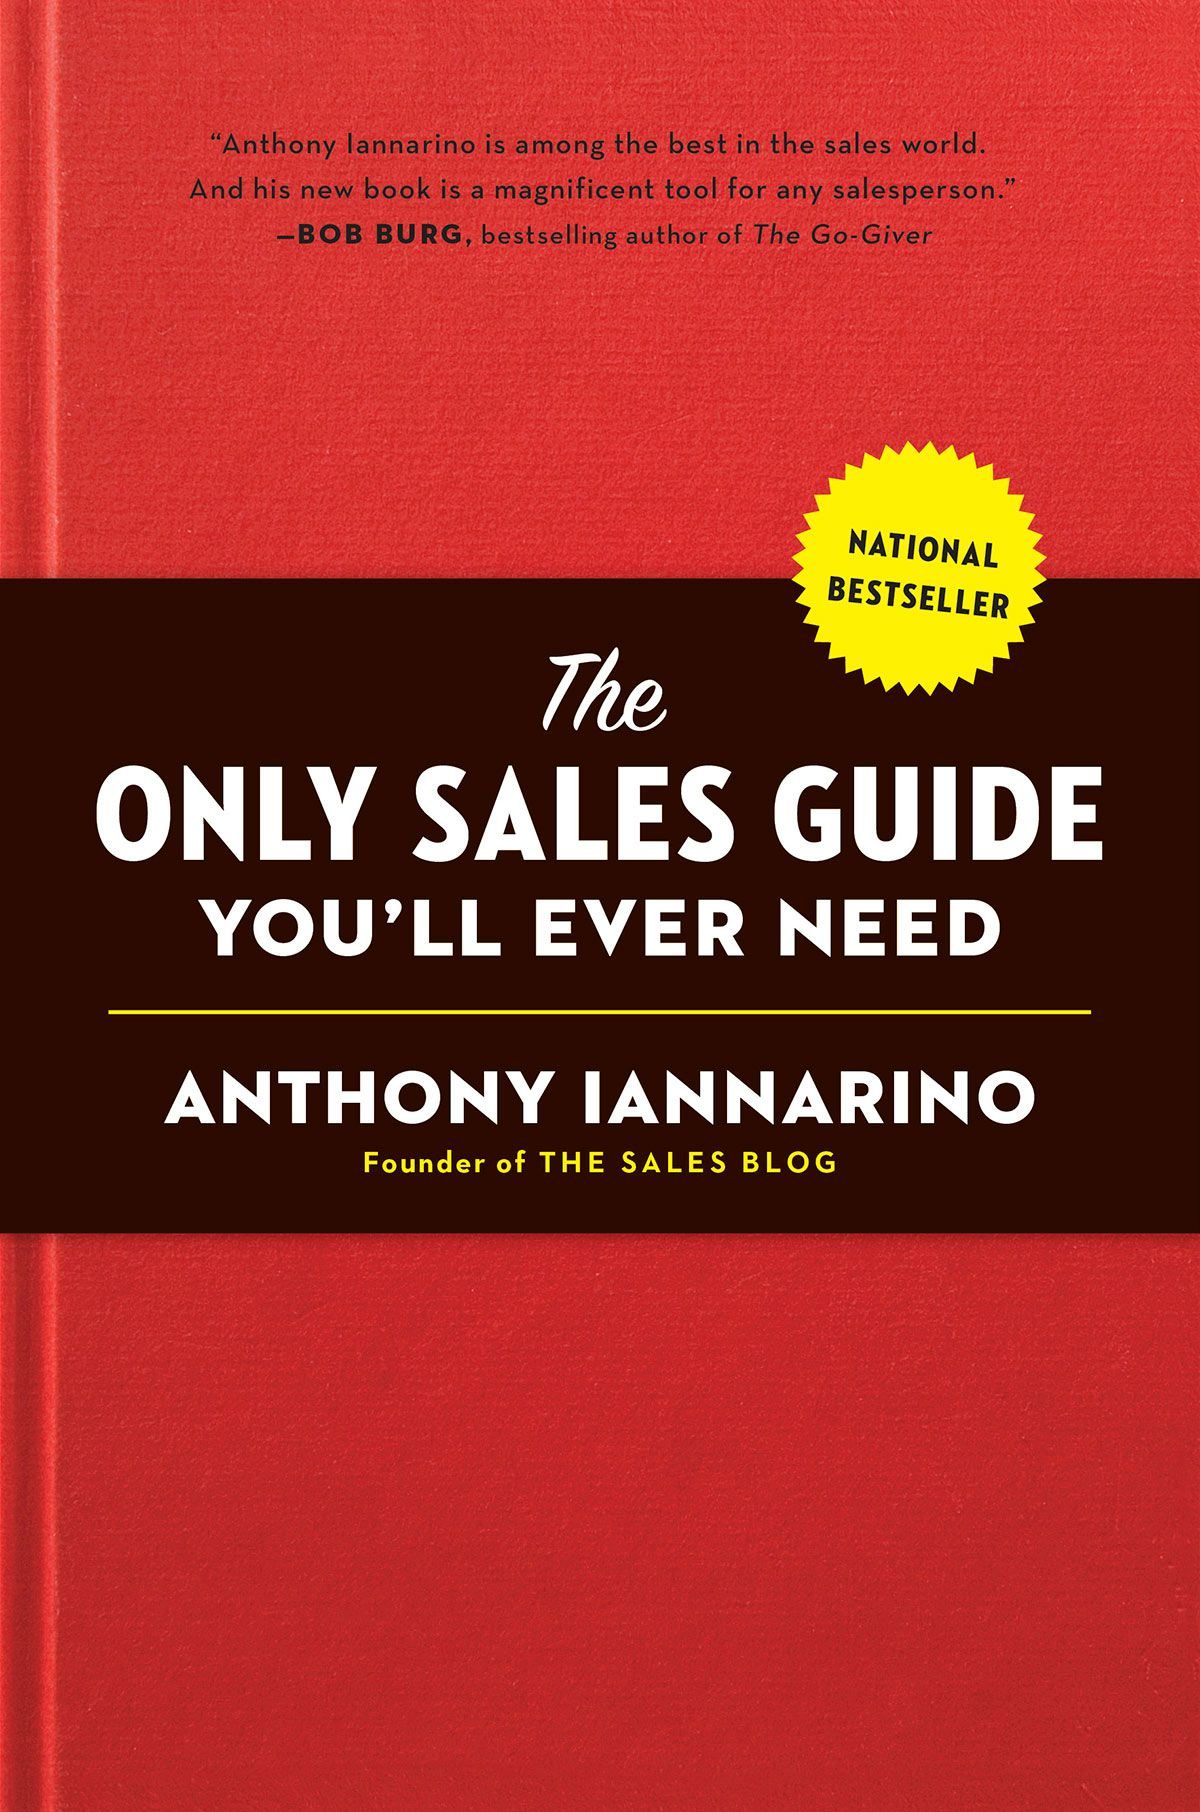 The Only Sales Guide You'll Ever Need book cover